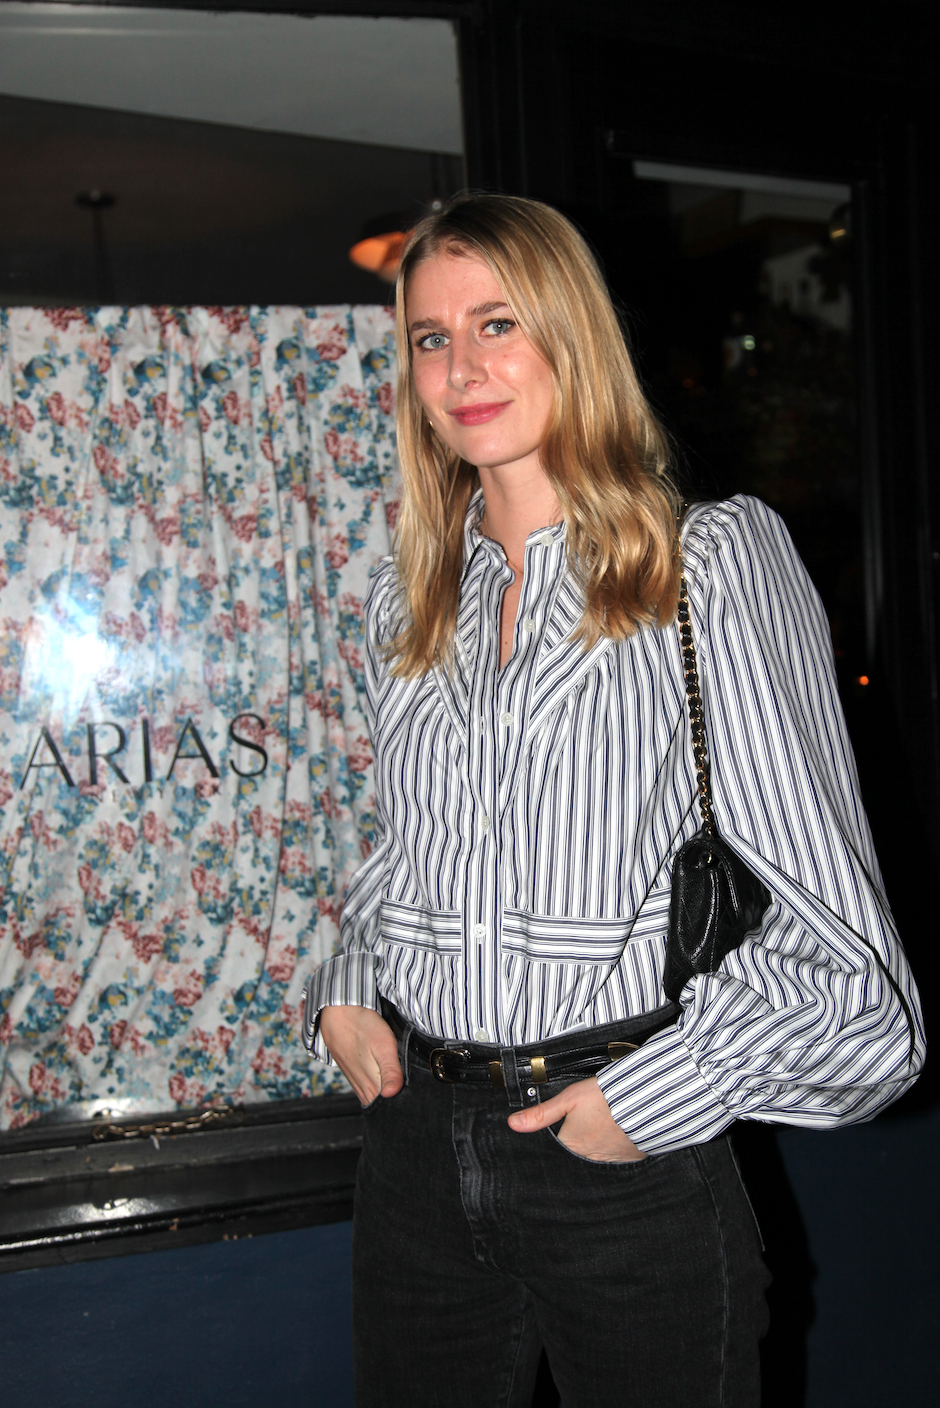 Laura Stoloff attends ARIAS Spring Summer 20 celebratory dinner